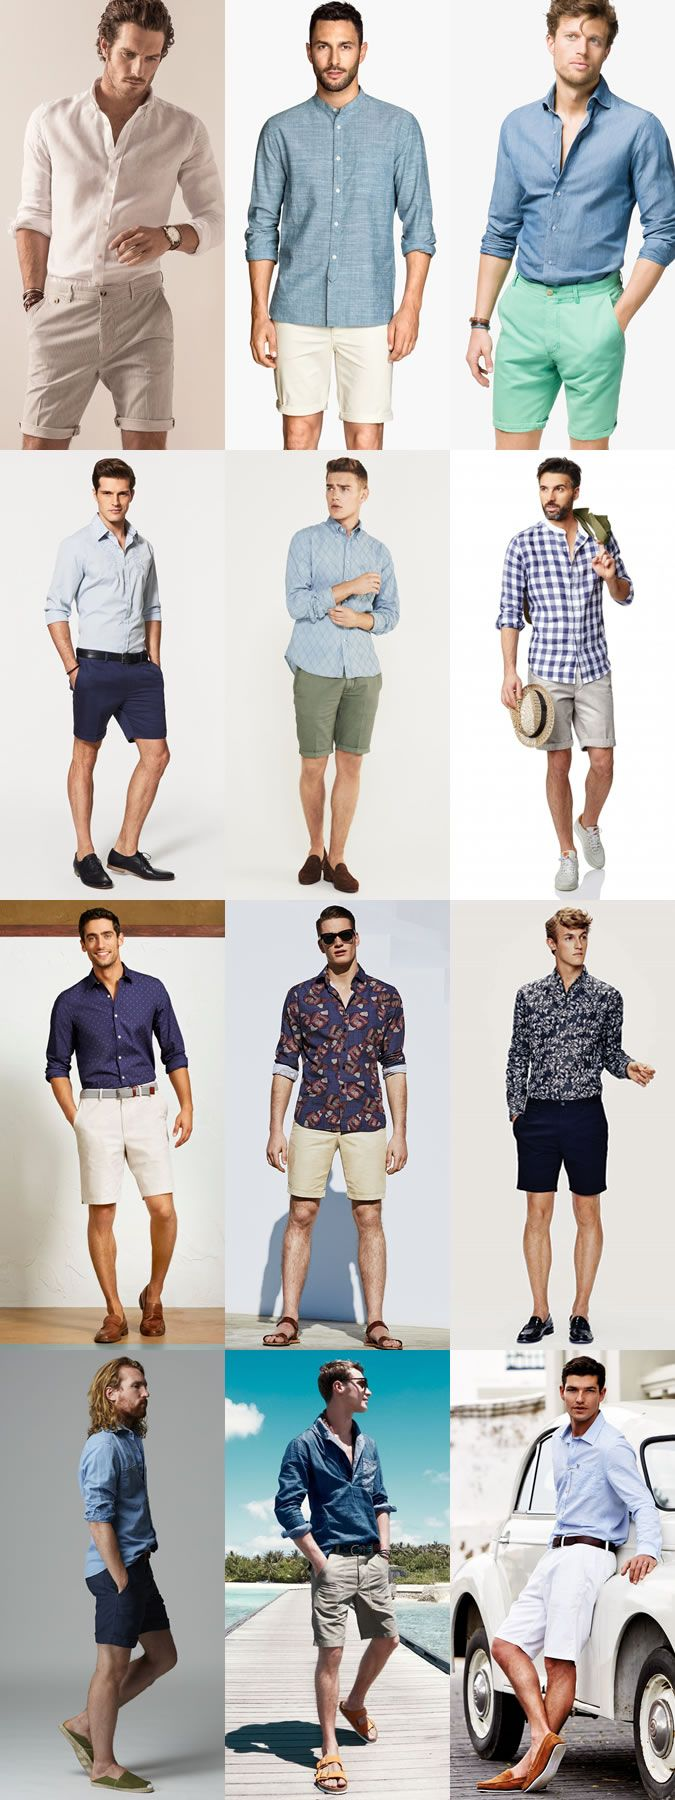 Men's Go-To Smart-Casual Summer Outfit Combinations: Long-Sleeved Shirt And…